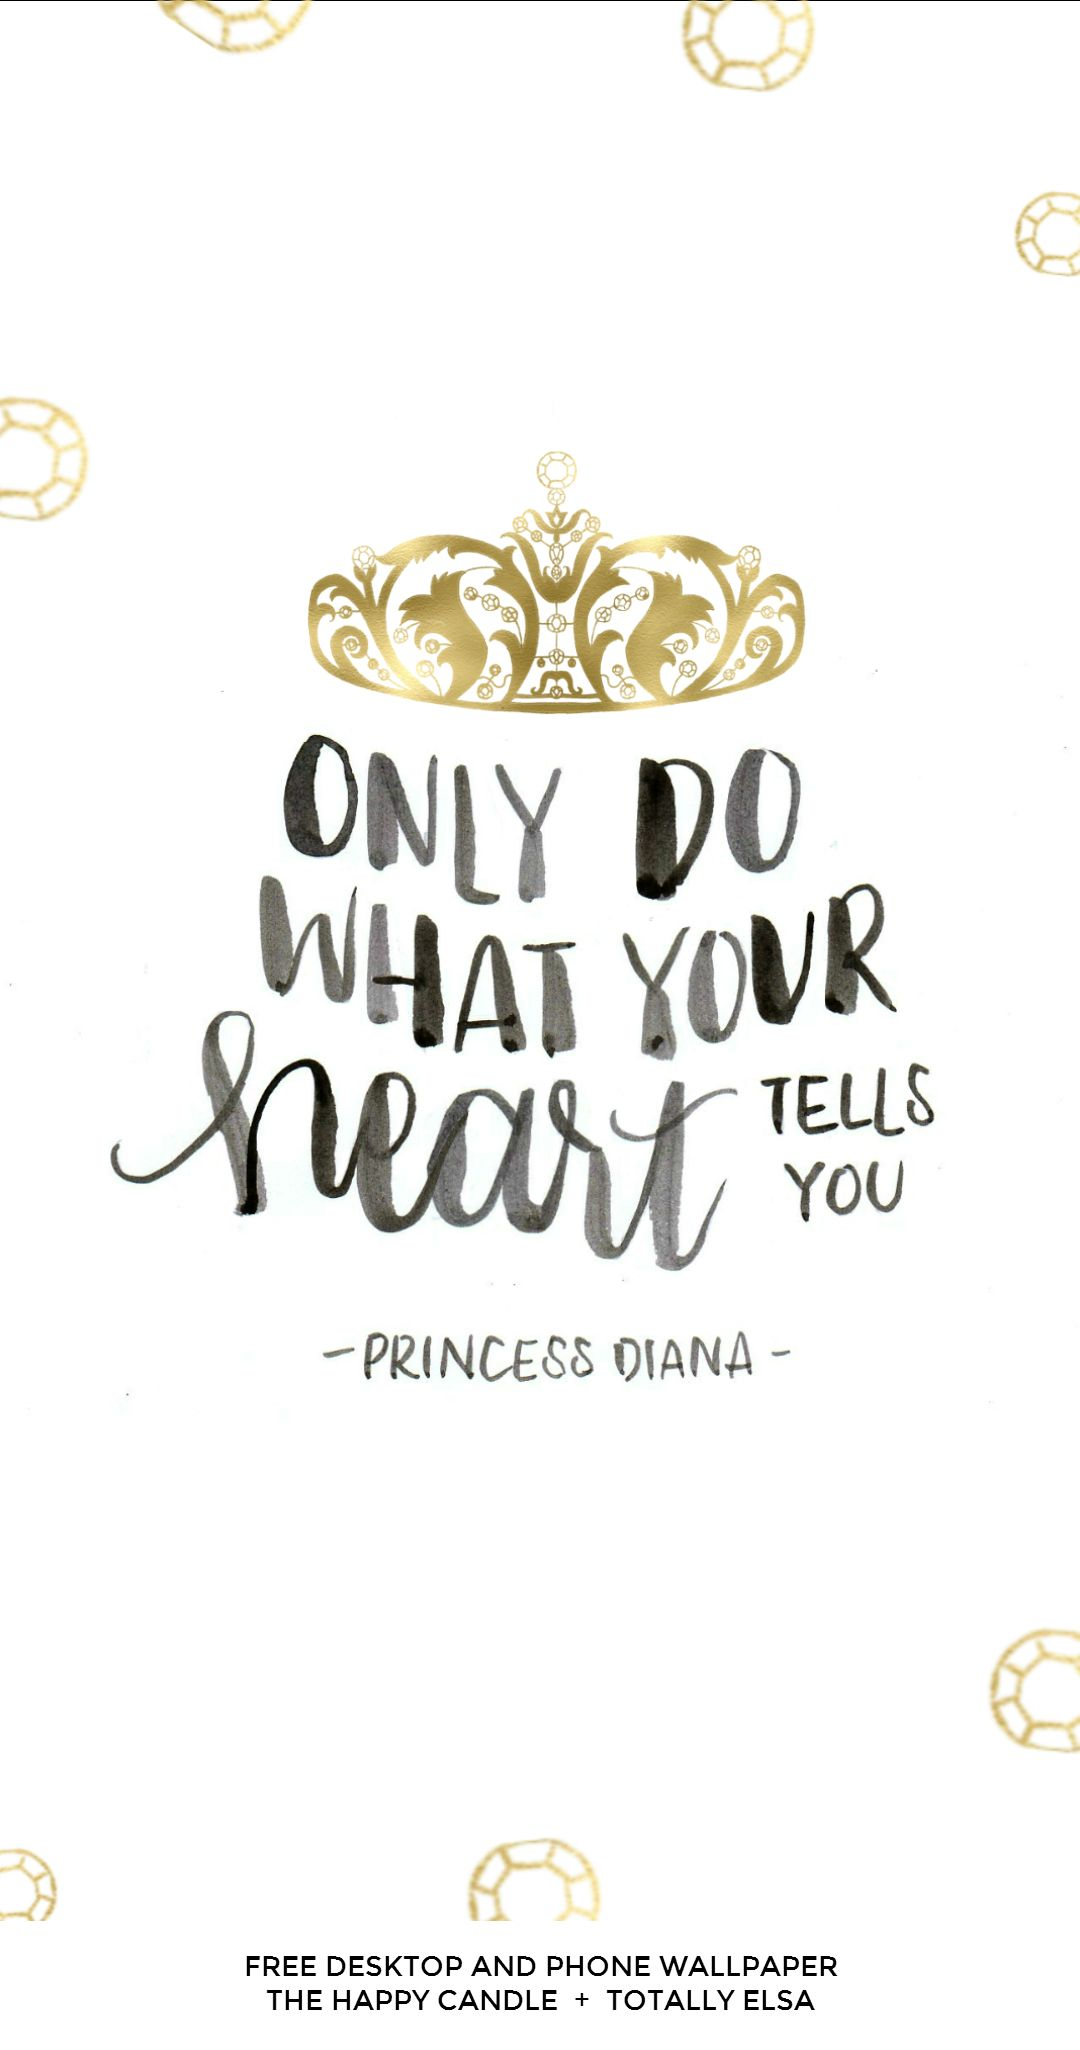 A Quote A Free Desktop And Phone Wallpaper With A Quote From Princess Diana .